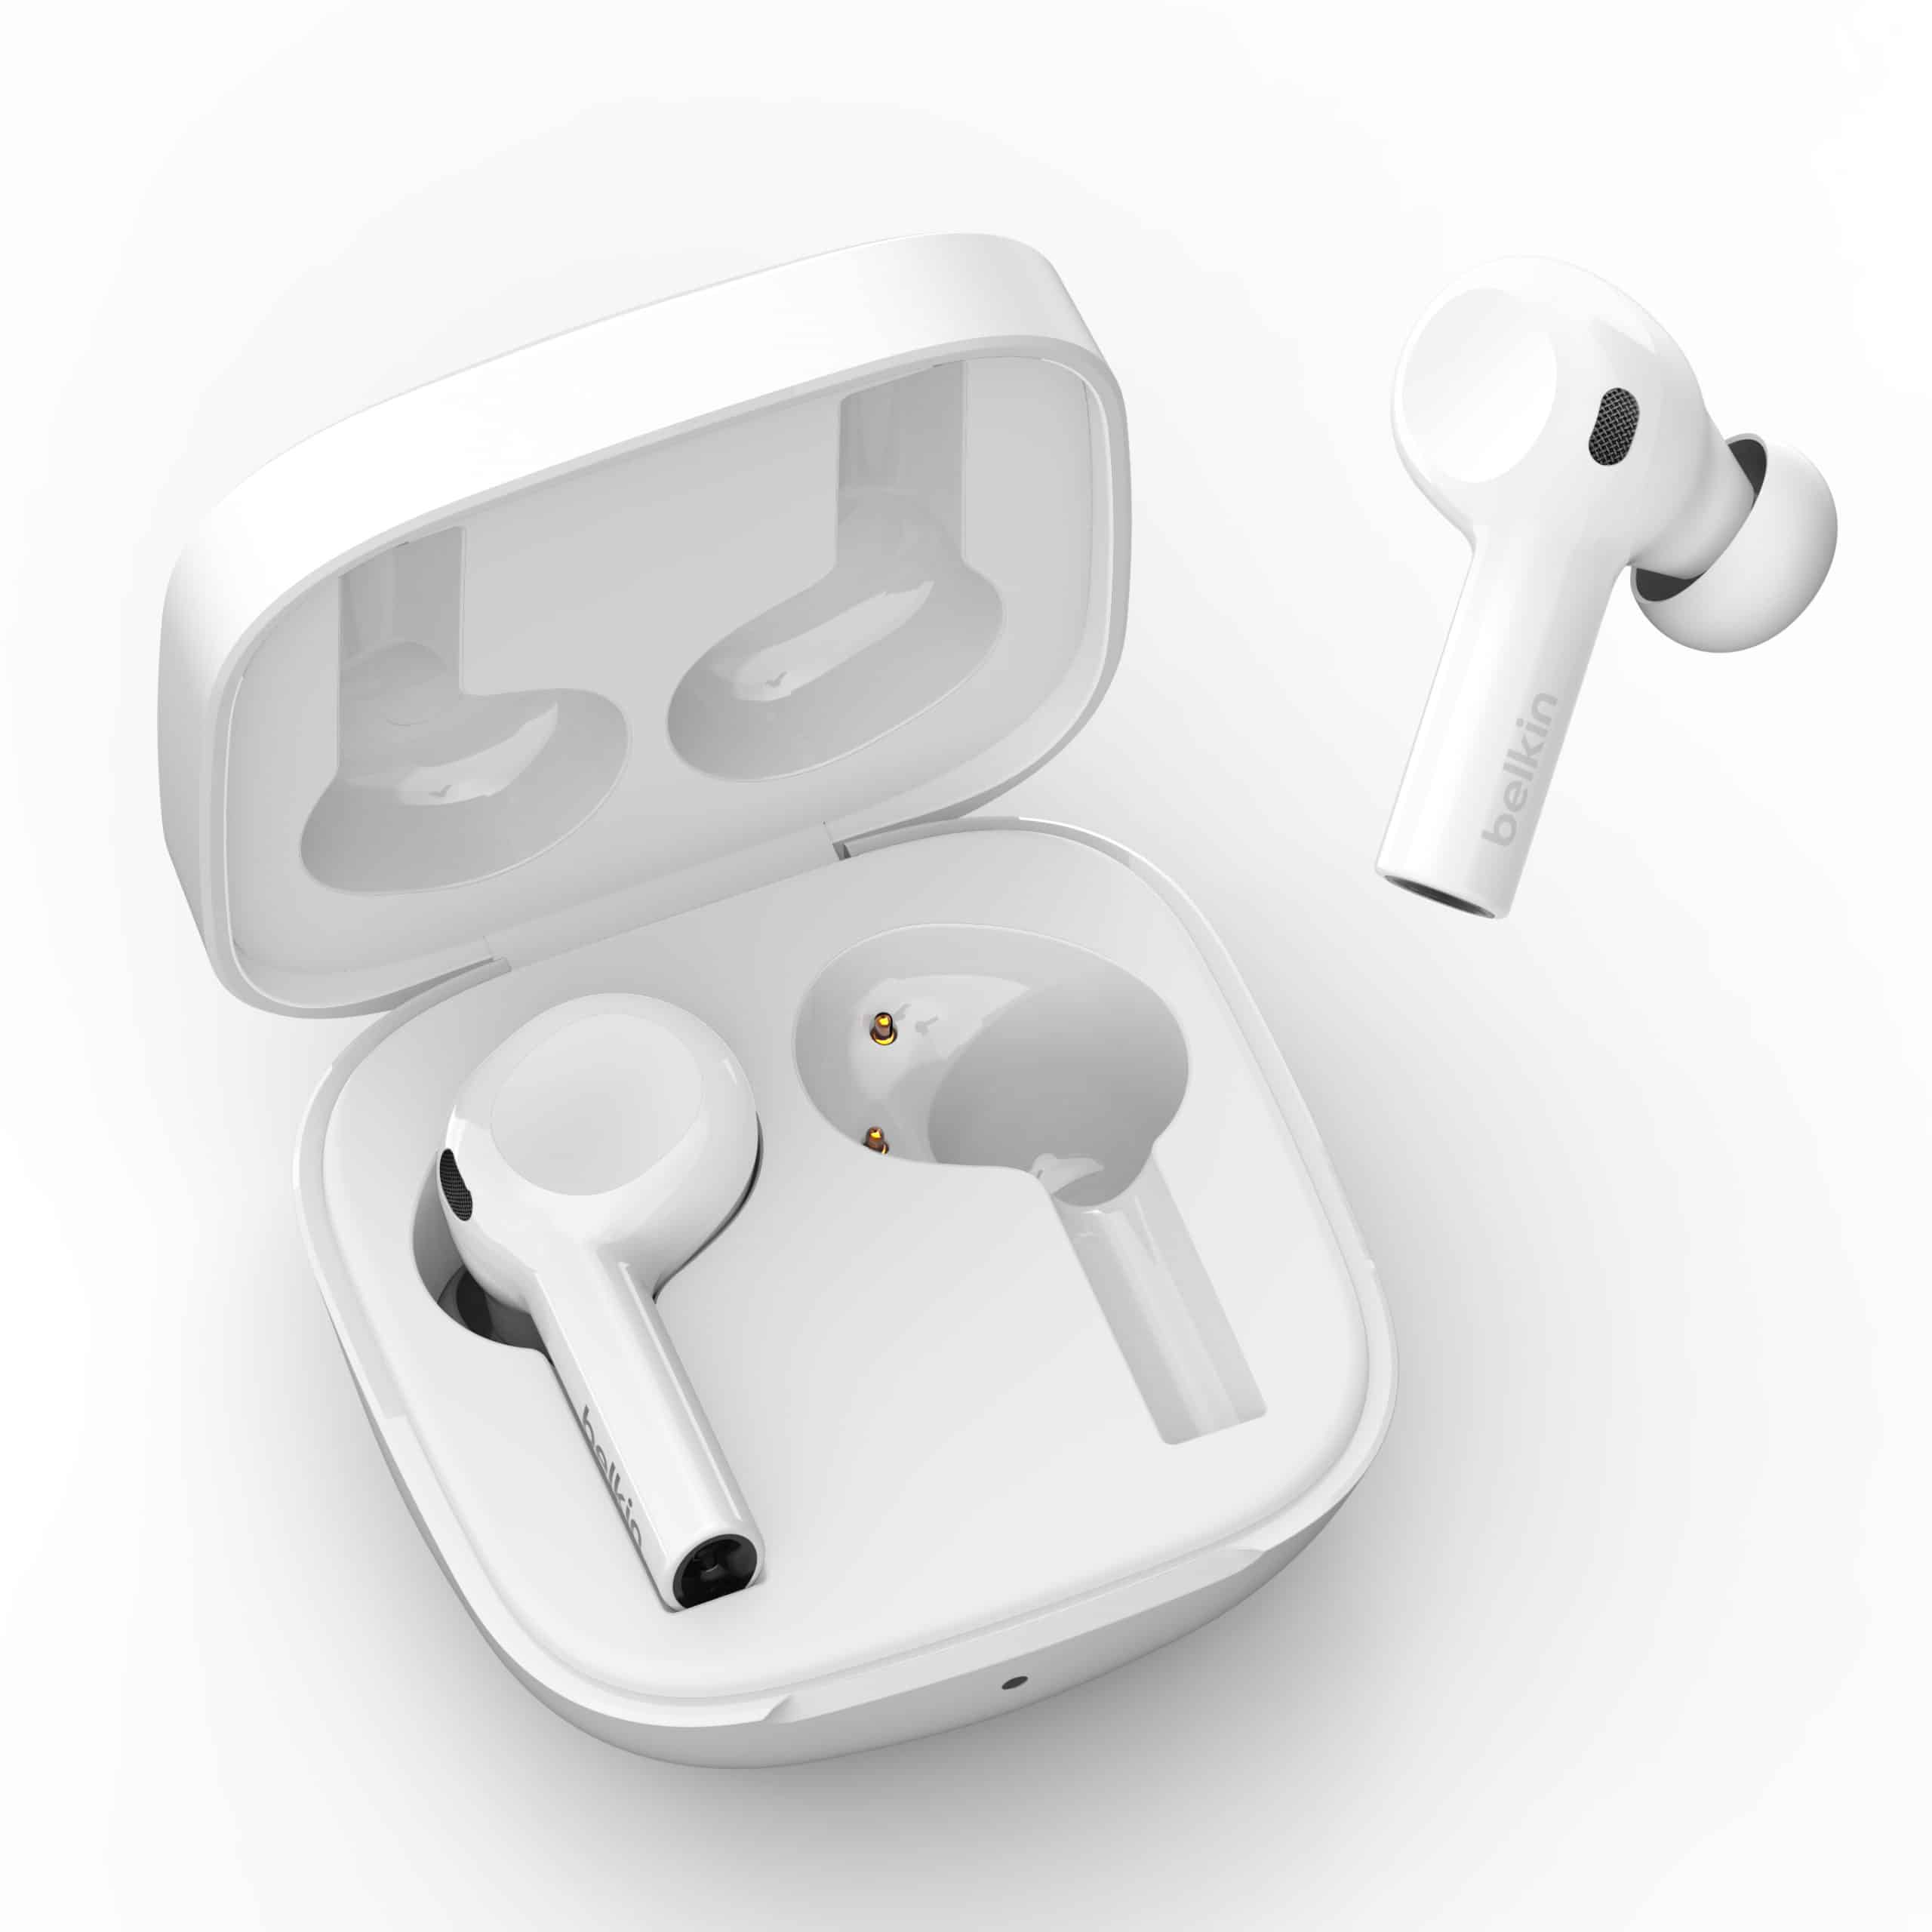 Belkin introduces SOUNDFORM Freedom True Wireless Earbuds, 2-in-1 Wireless Charger Stand with MagSafe and Linksys Aware